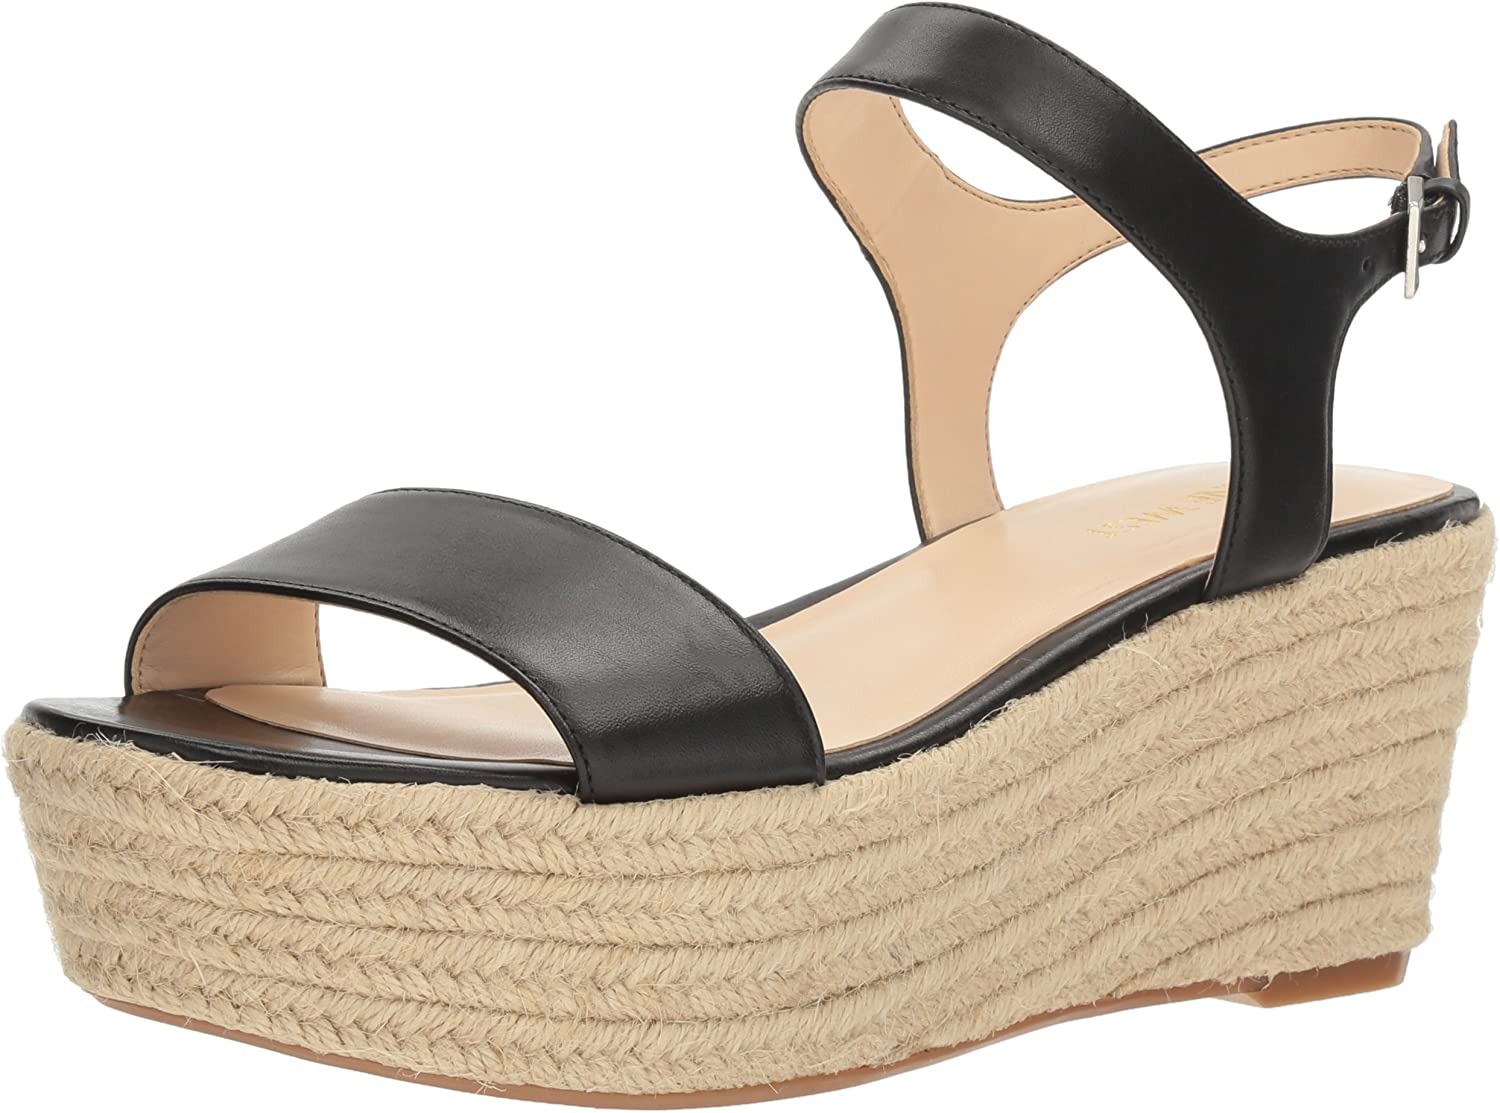 Nine West Womens Flownder Leather Wedge Sandal